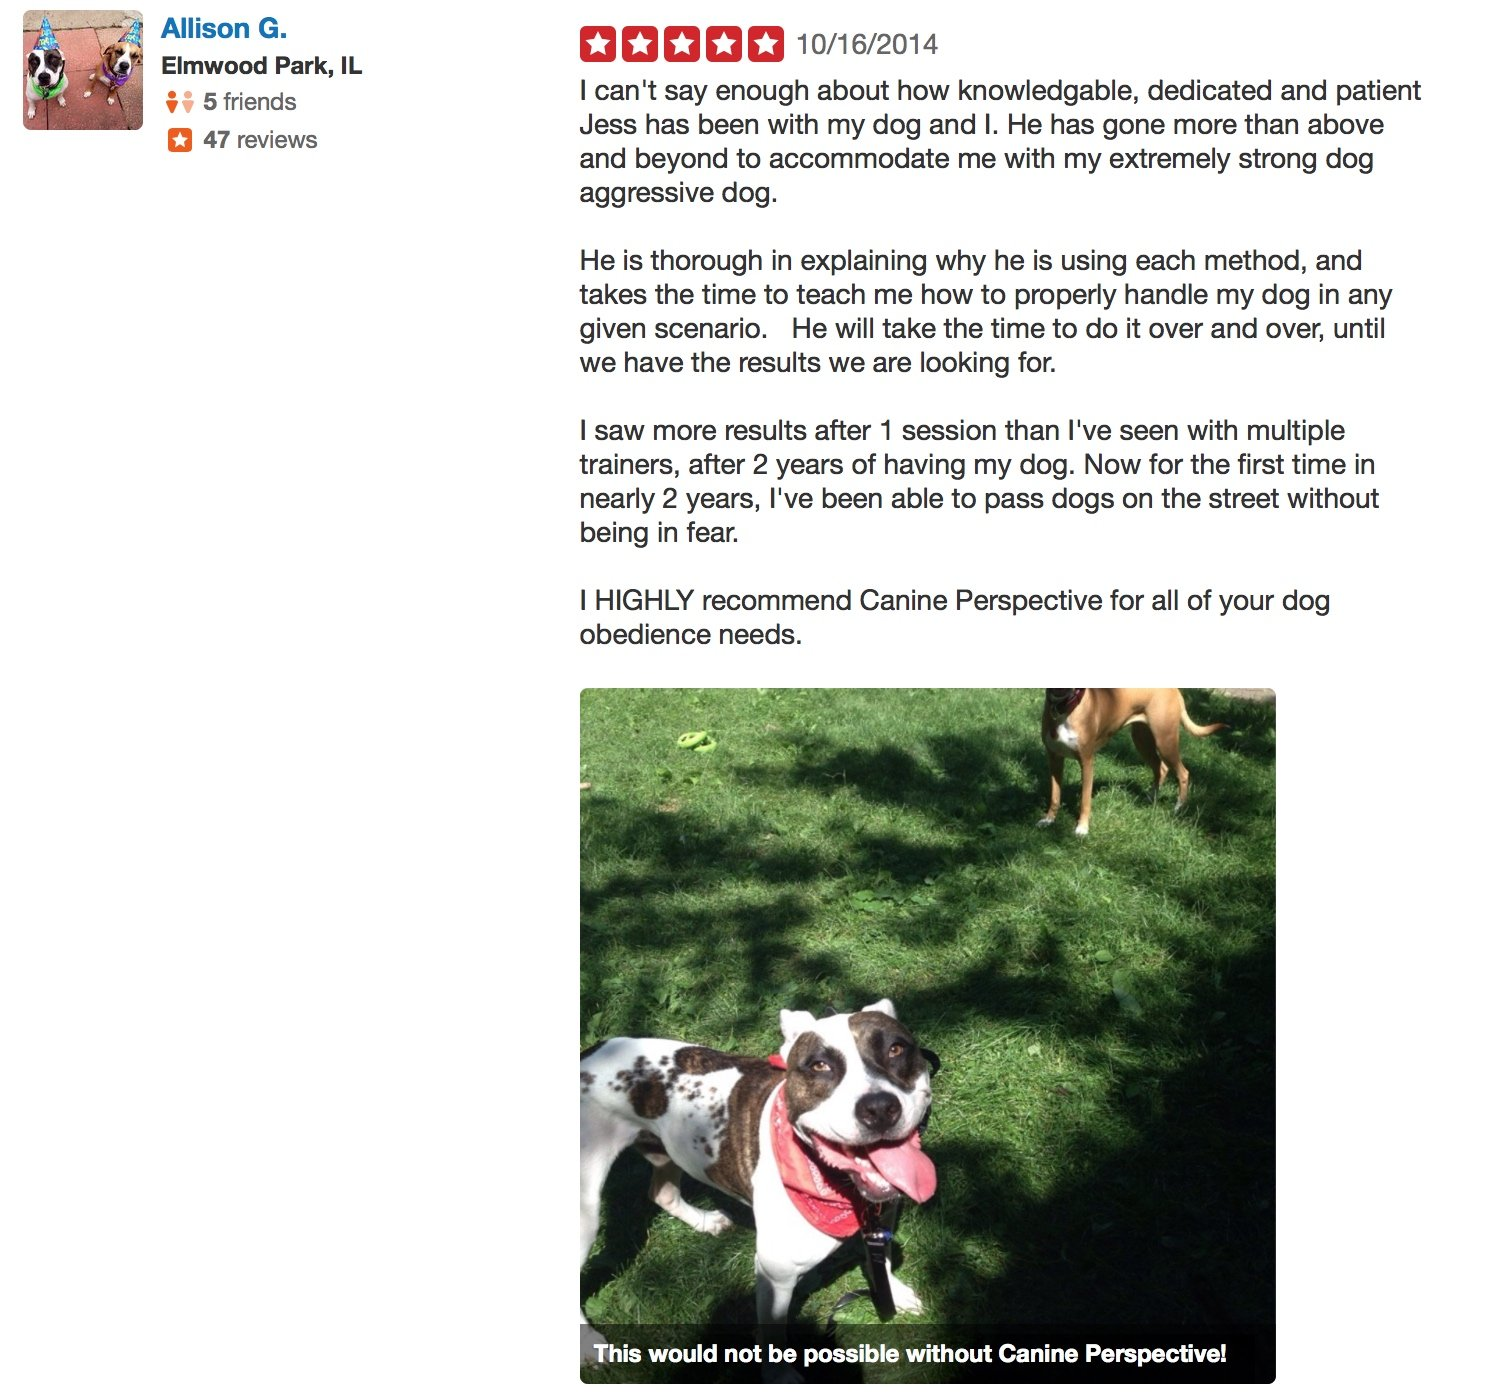 Canine Perspective Dog Training Yelp review